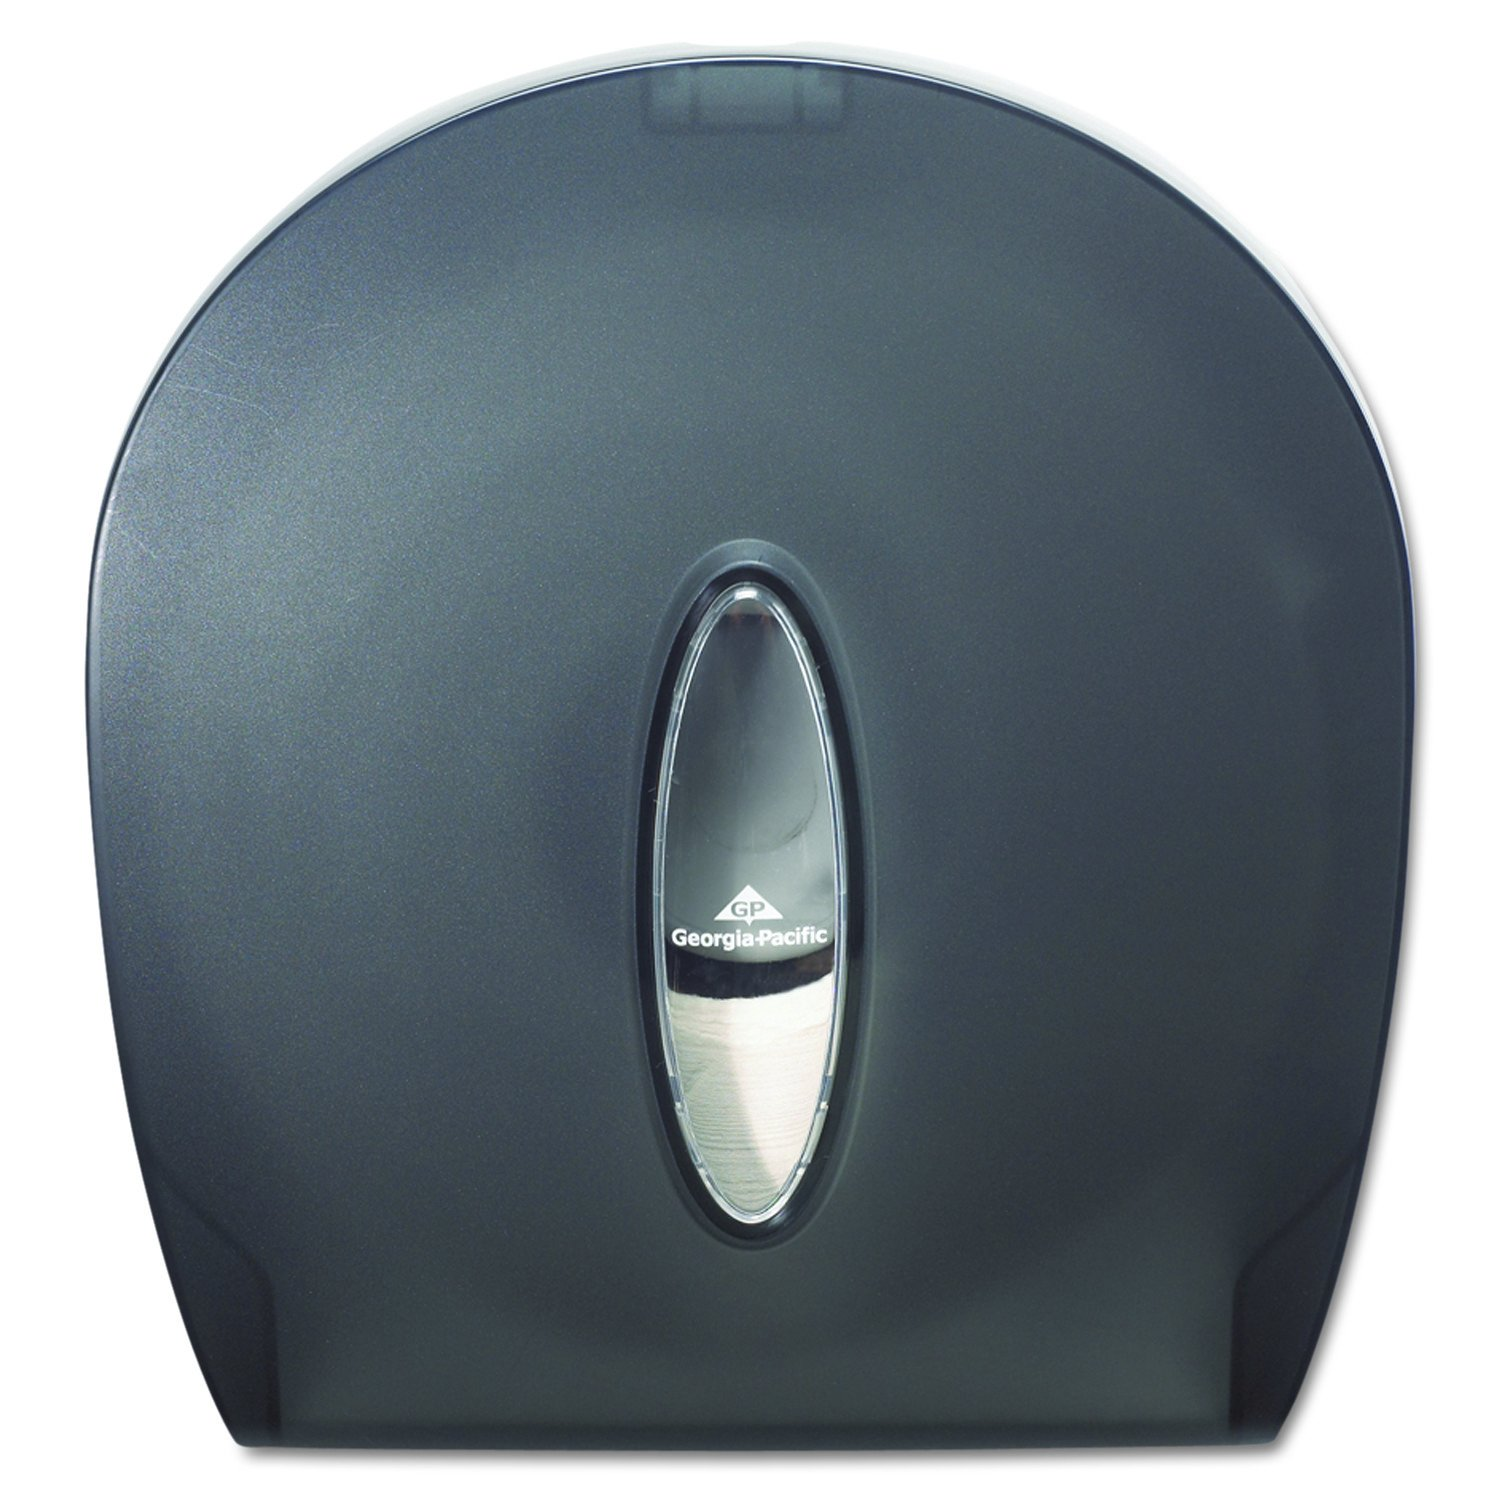 Georgia Pacific GP 59009 Translucent Smoke Jumbo Jr. Bathroom Tissue Dispenser 10.61 Width x 11.29 Height x 5.39 Depth